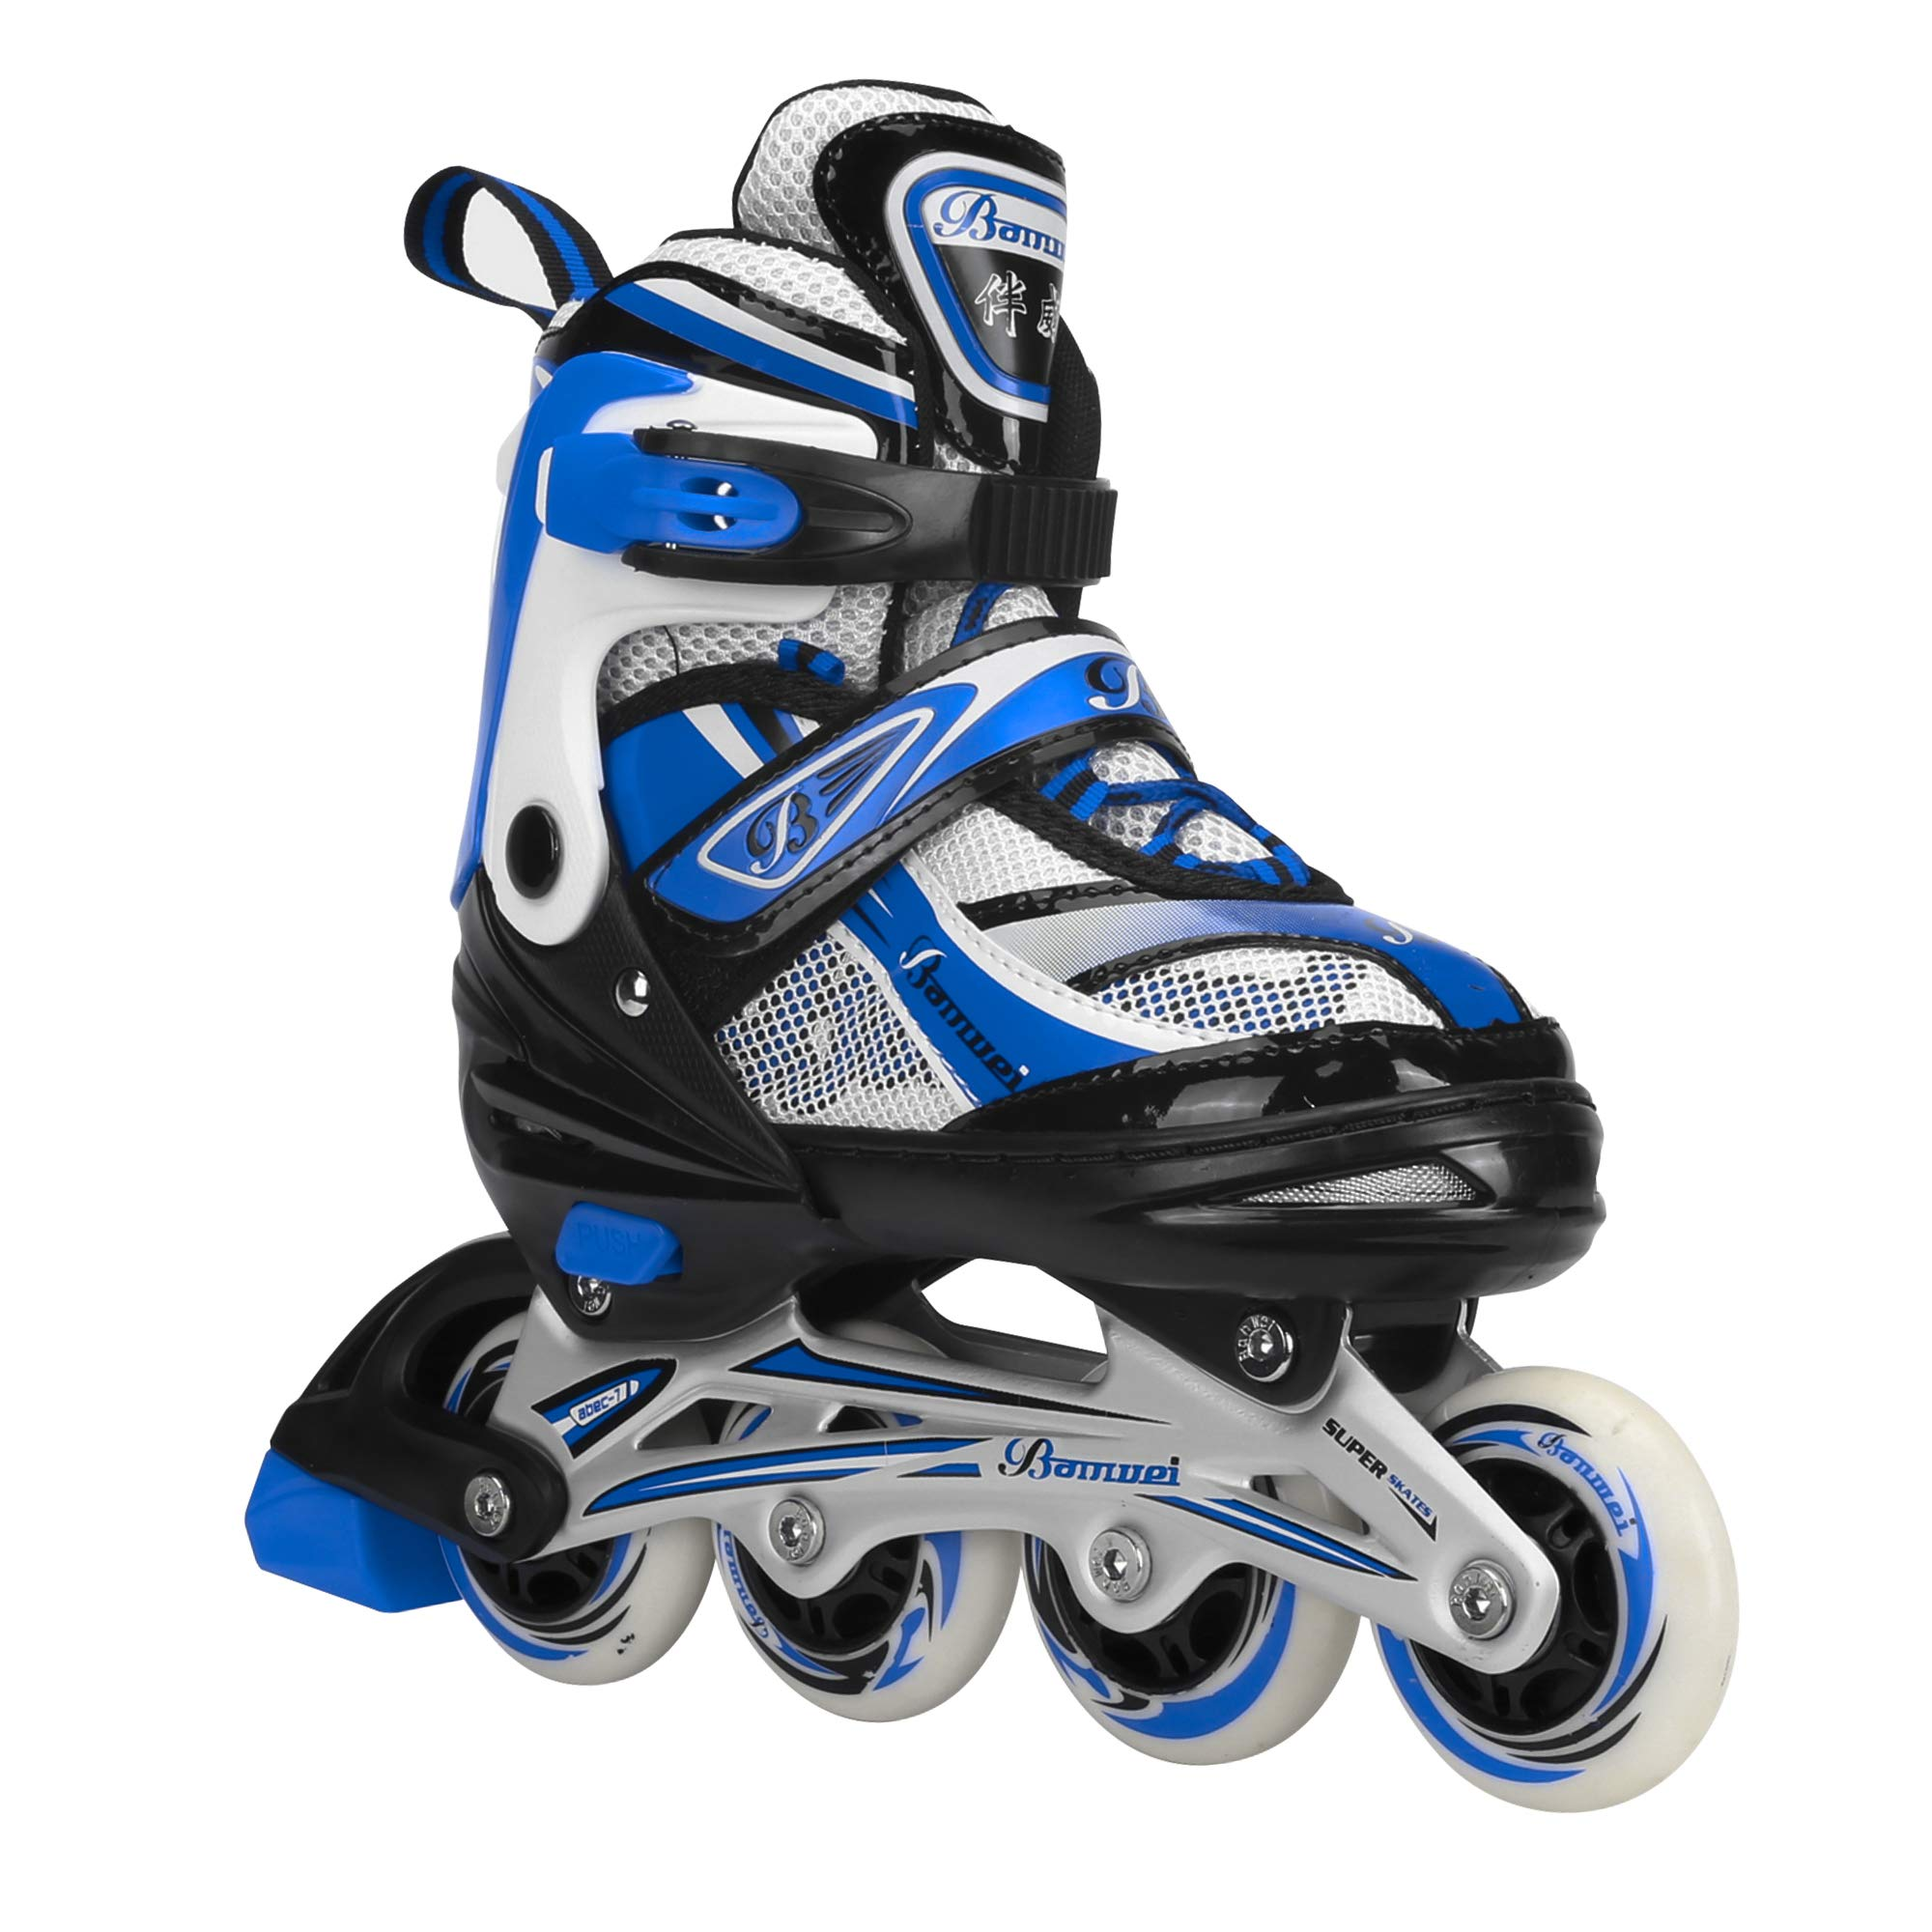 Banwei Adjustable Medium Blue Inline Skates for Girls and Boys Size 13.5J to 6 Illuminating Front Wheel Safe Durable Roller Skates Outdoor Indoor Use